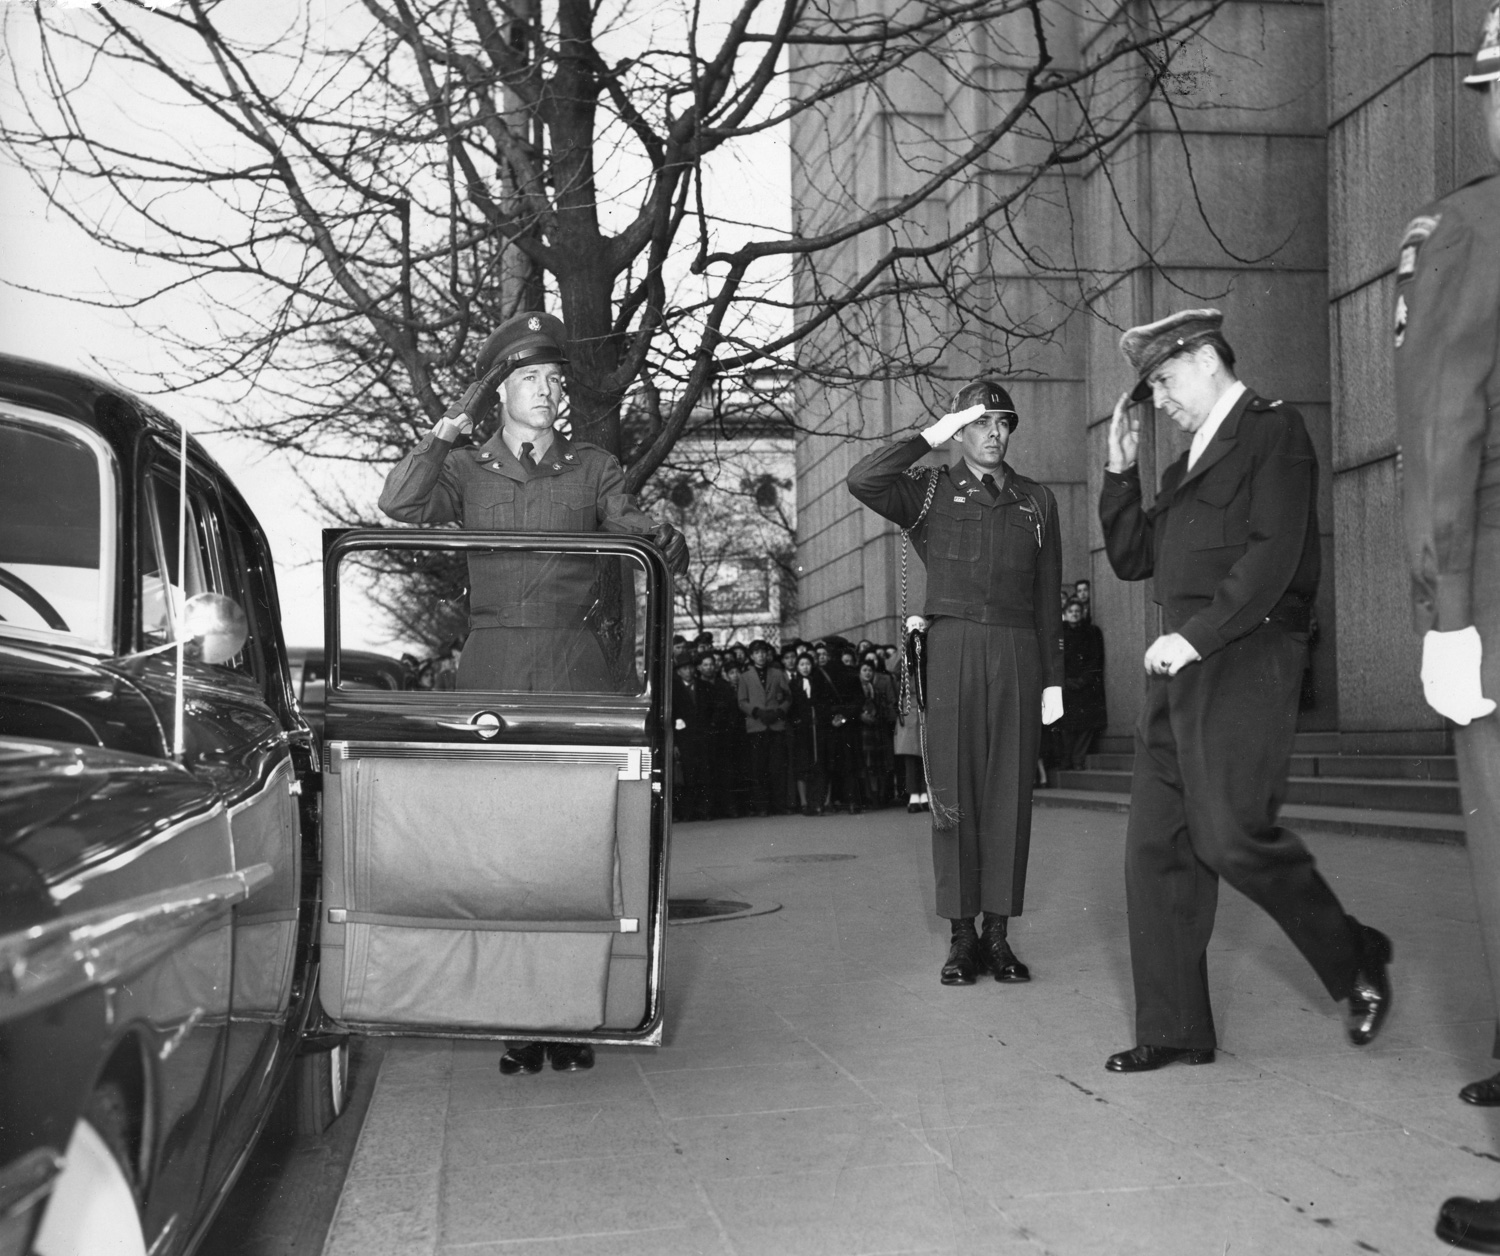 MacArthur leaves his office at the Dai Ichi Insurance Building in Tokyo on his 71st birthday in 1951.